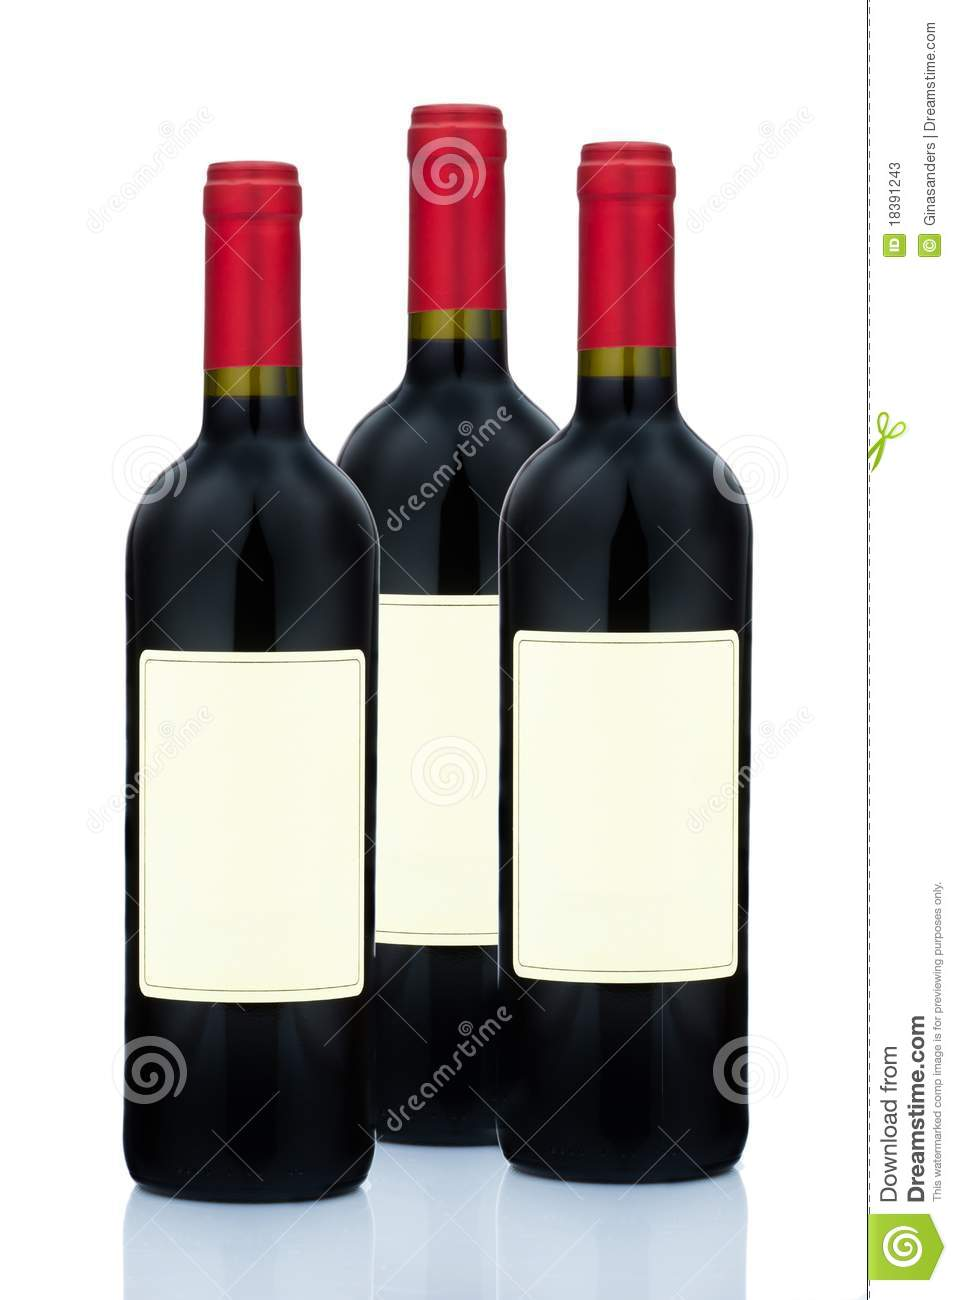 red wine in wine bottles bottle red wine